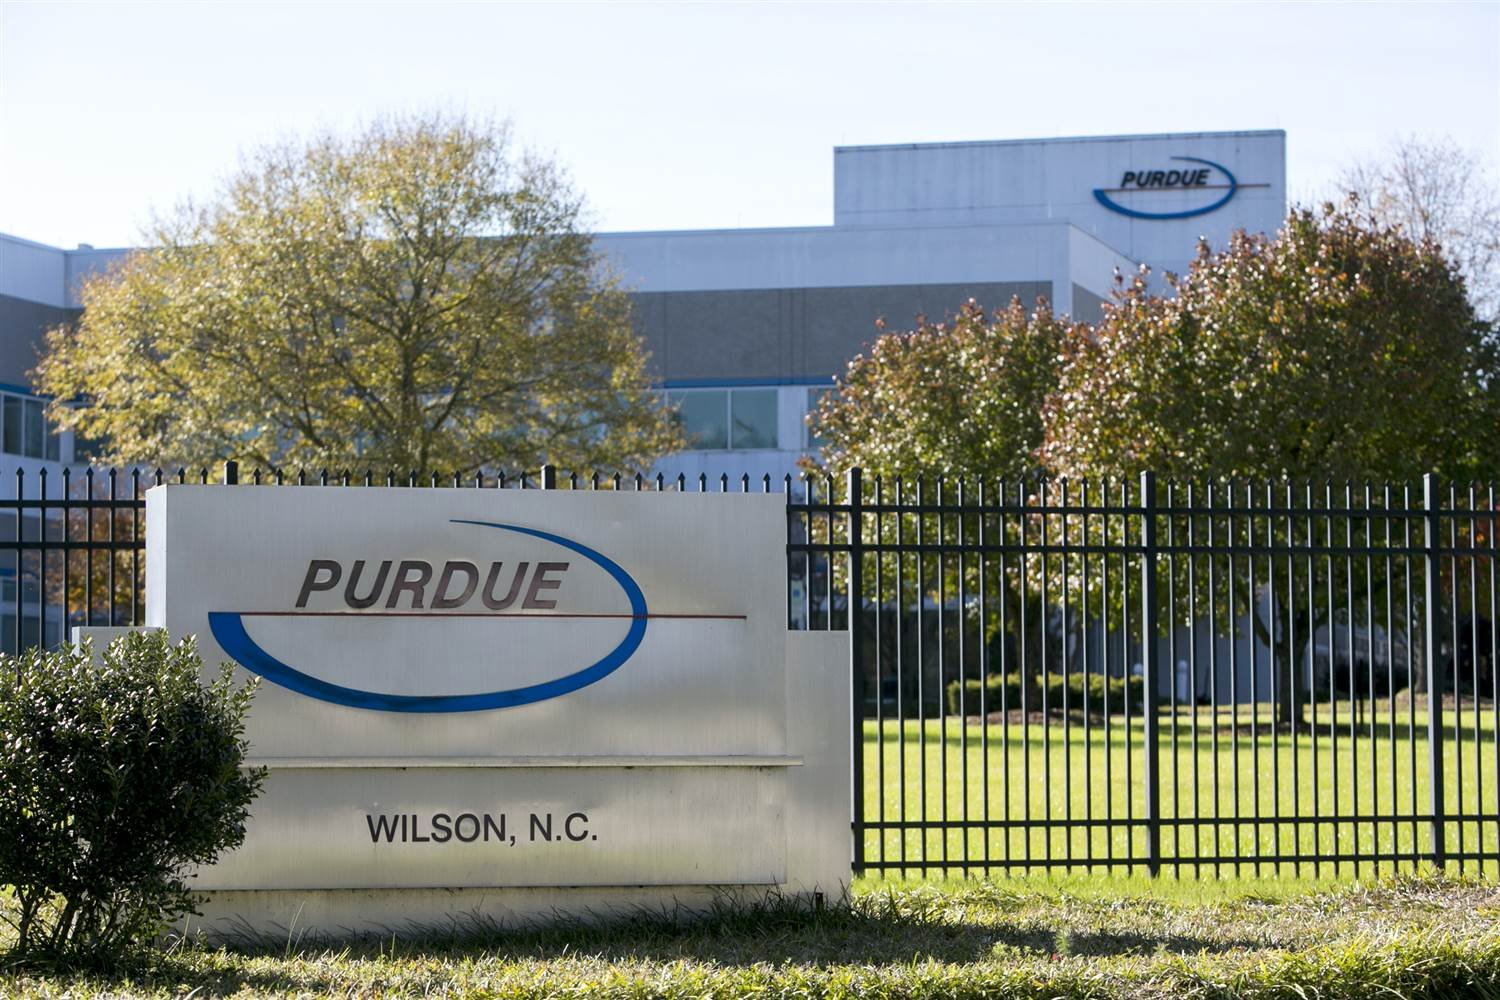 Purdue Pharma will stop promoting its opioid drugs to doctors